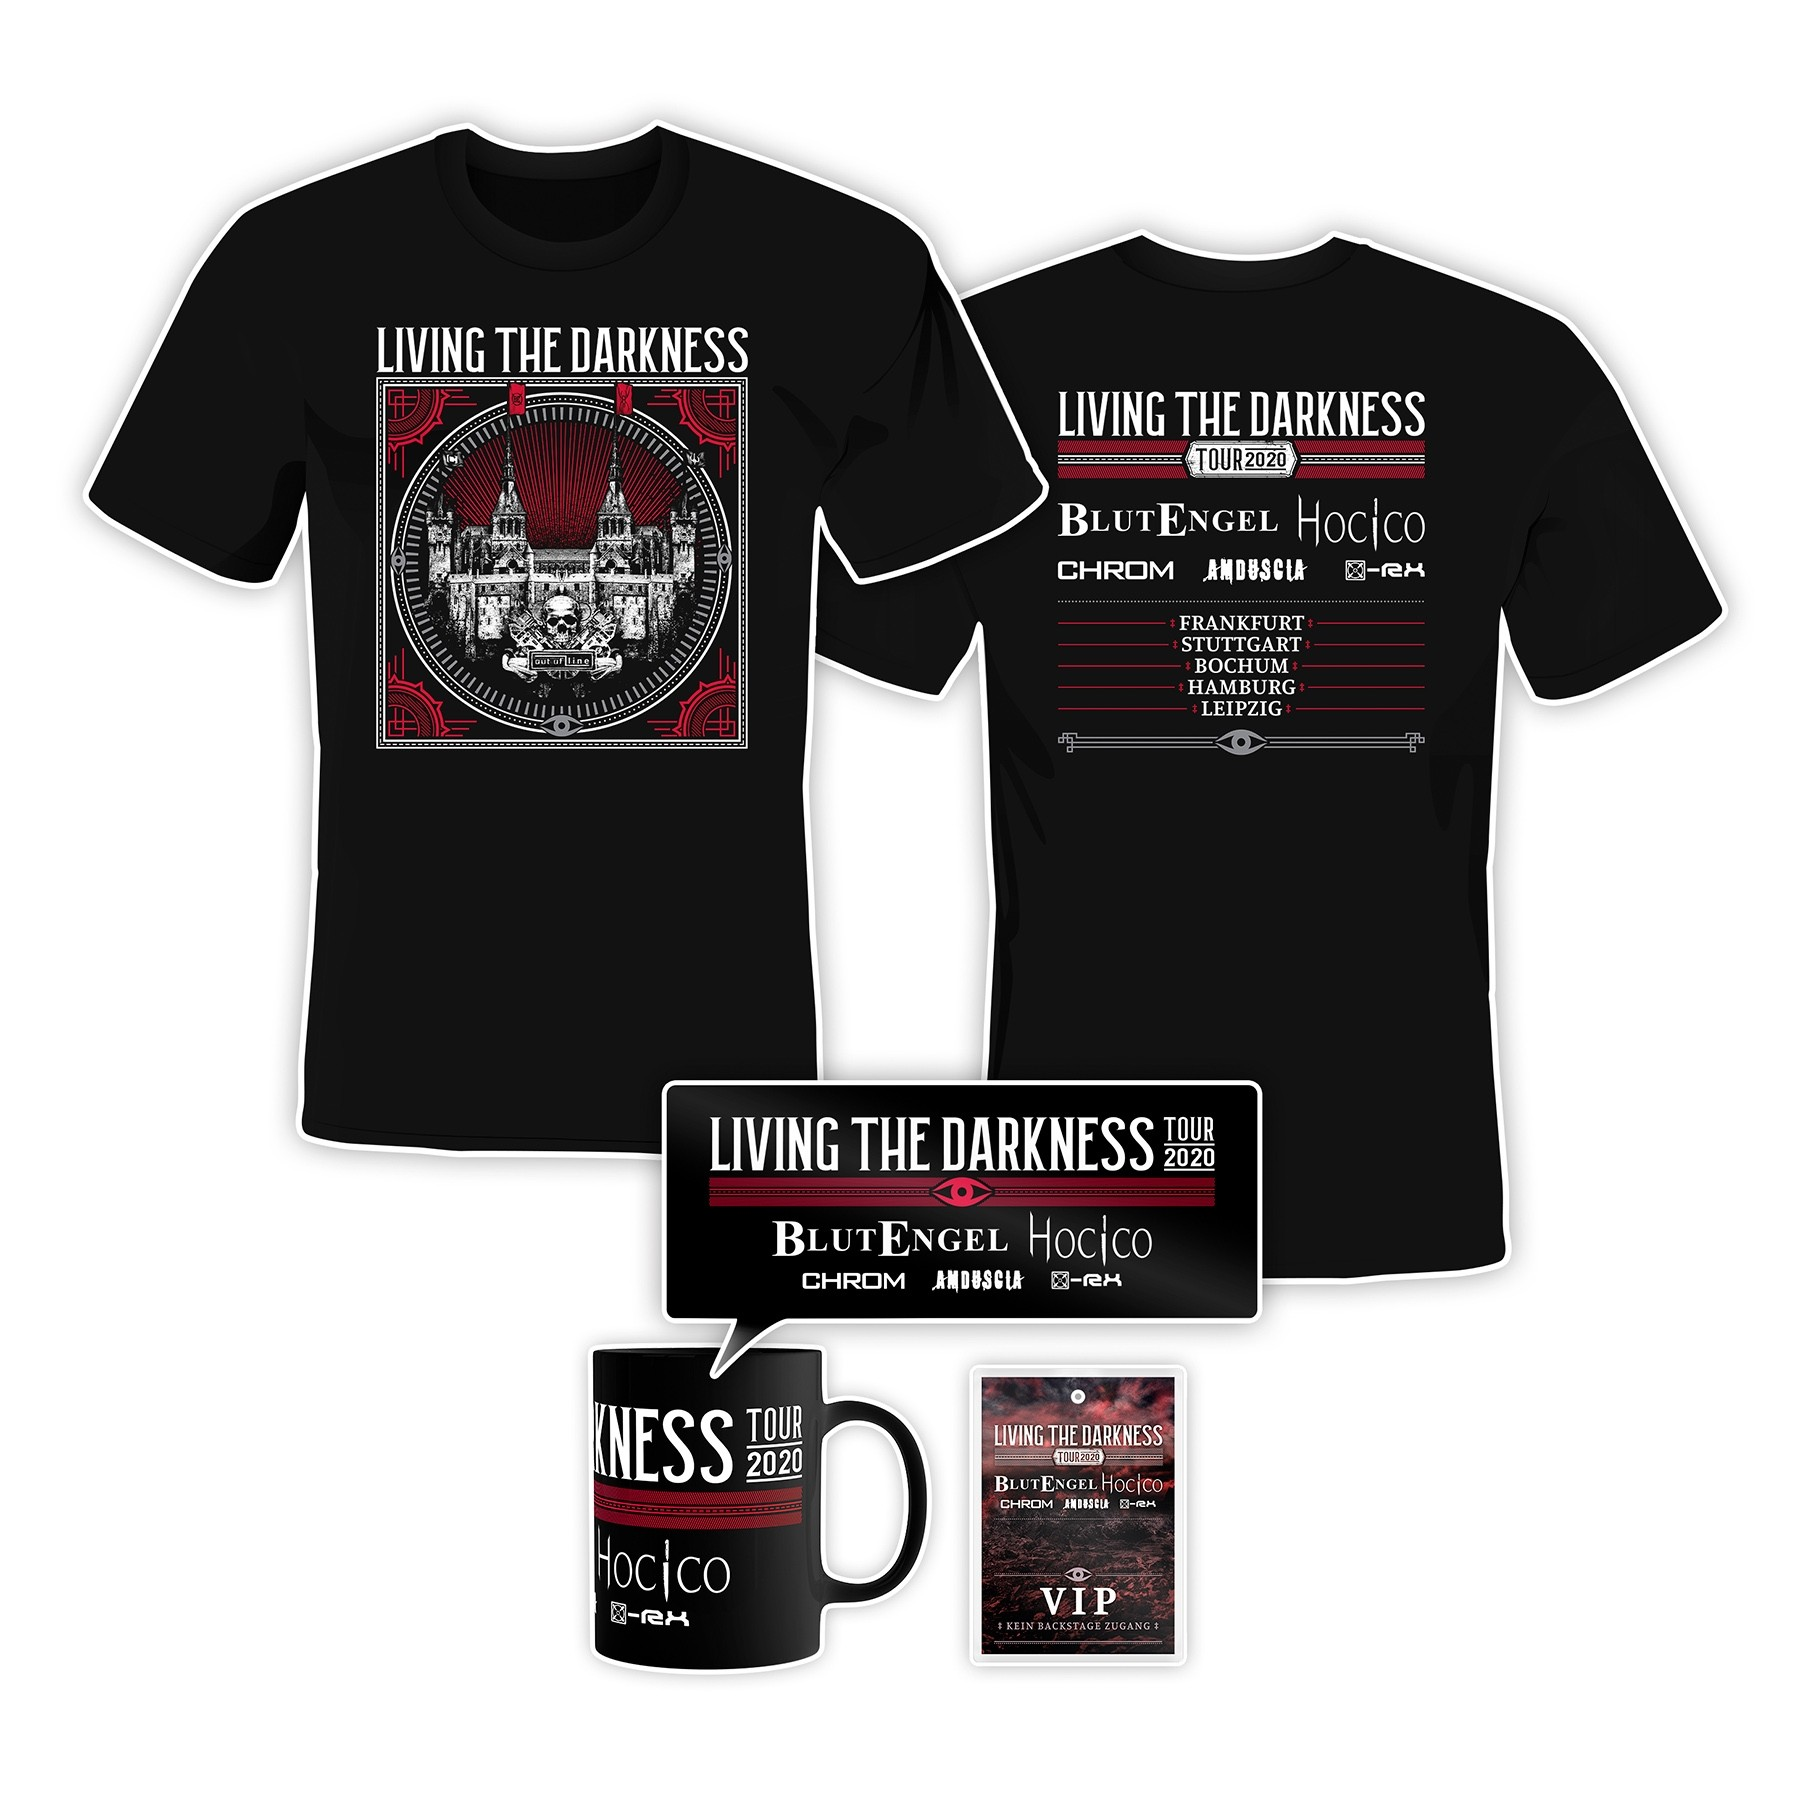 Living The Darkness Tour 2020 - VIP Bundle (Incl. Meet & Greet)